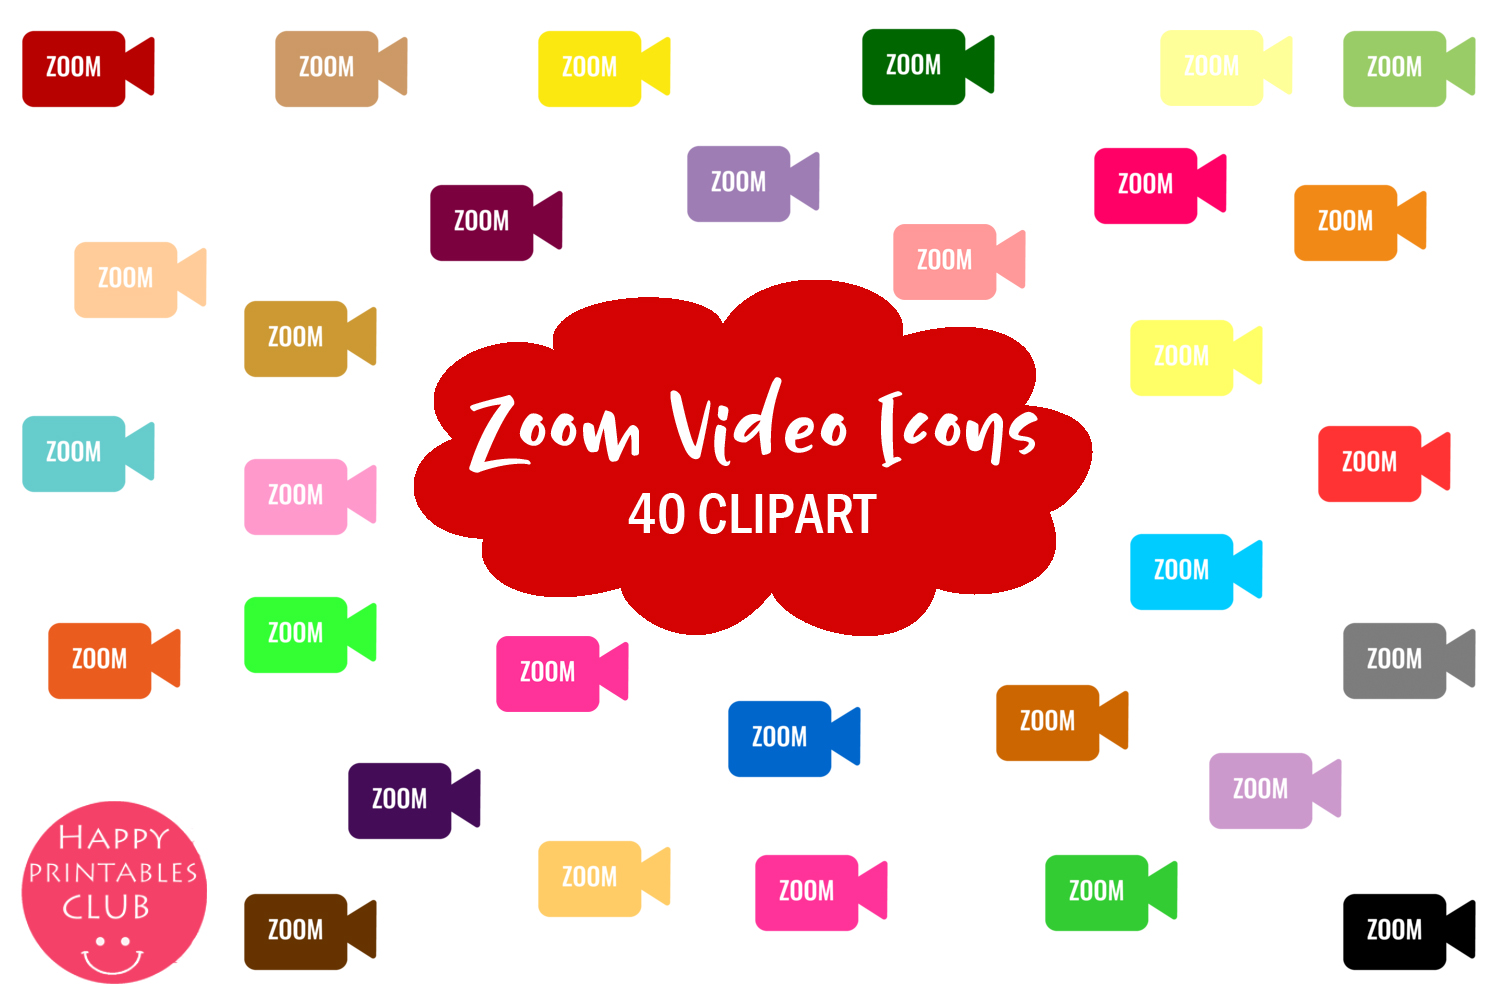 Download Free Zoom Meeting Video Meeting Clipart Set Graphic By Happy for Cricut Explore, Silhouette and other cutting machines.